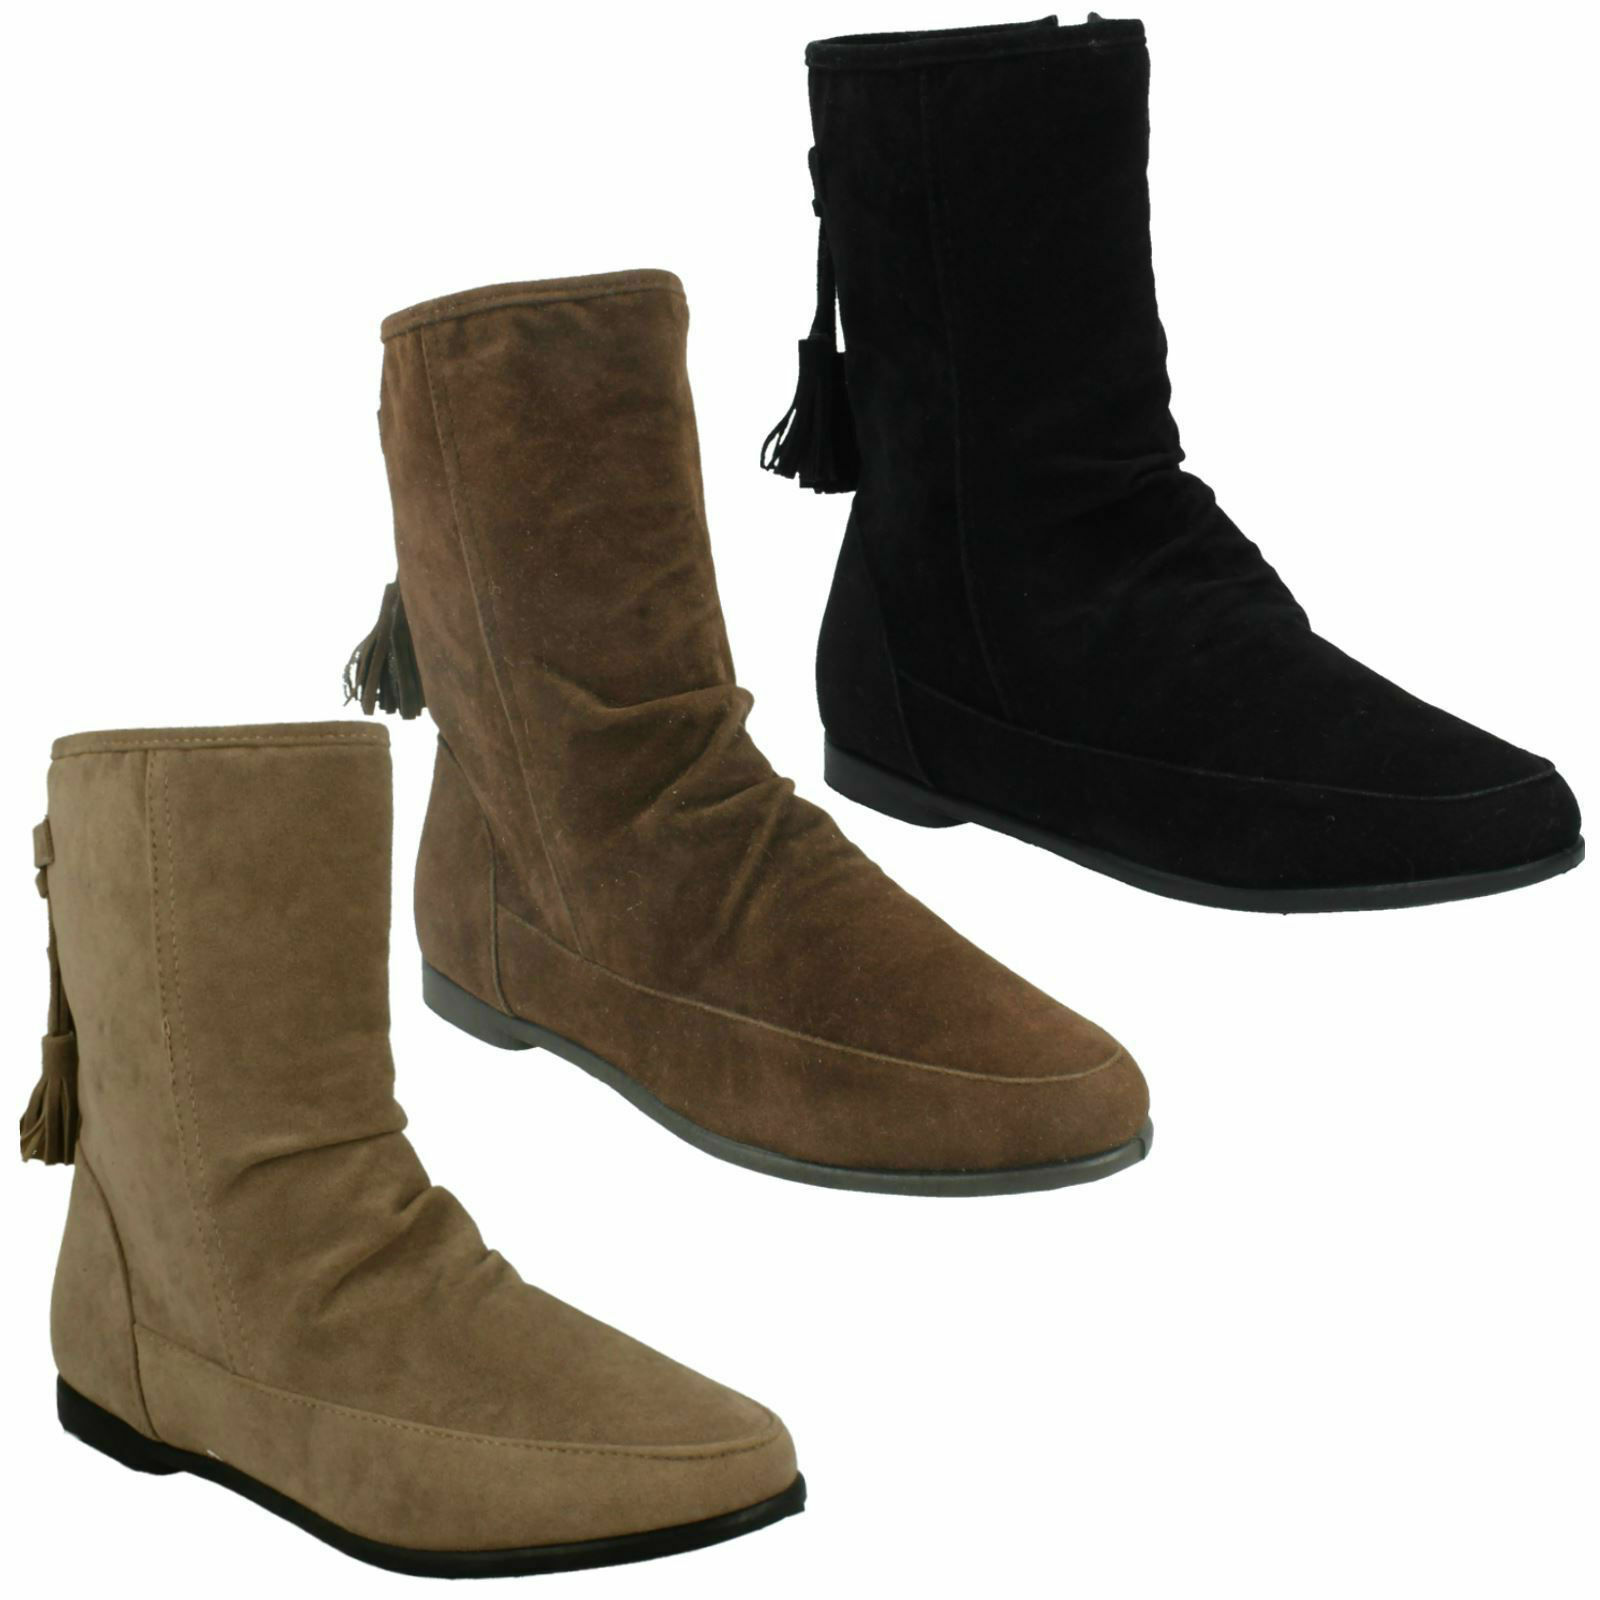 LADIES WOMENS SUEDE TASSEL TRIM FLAT ZIP ANKLE BOOTS SHOES SIZE SPOT ON F4359